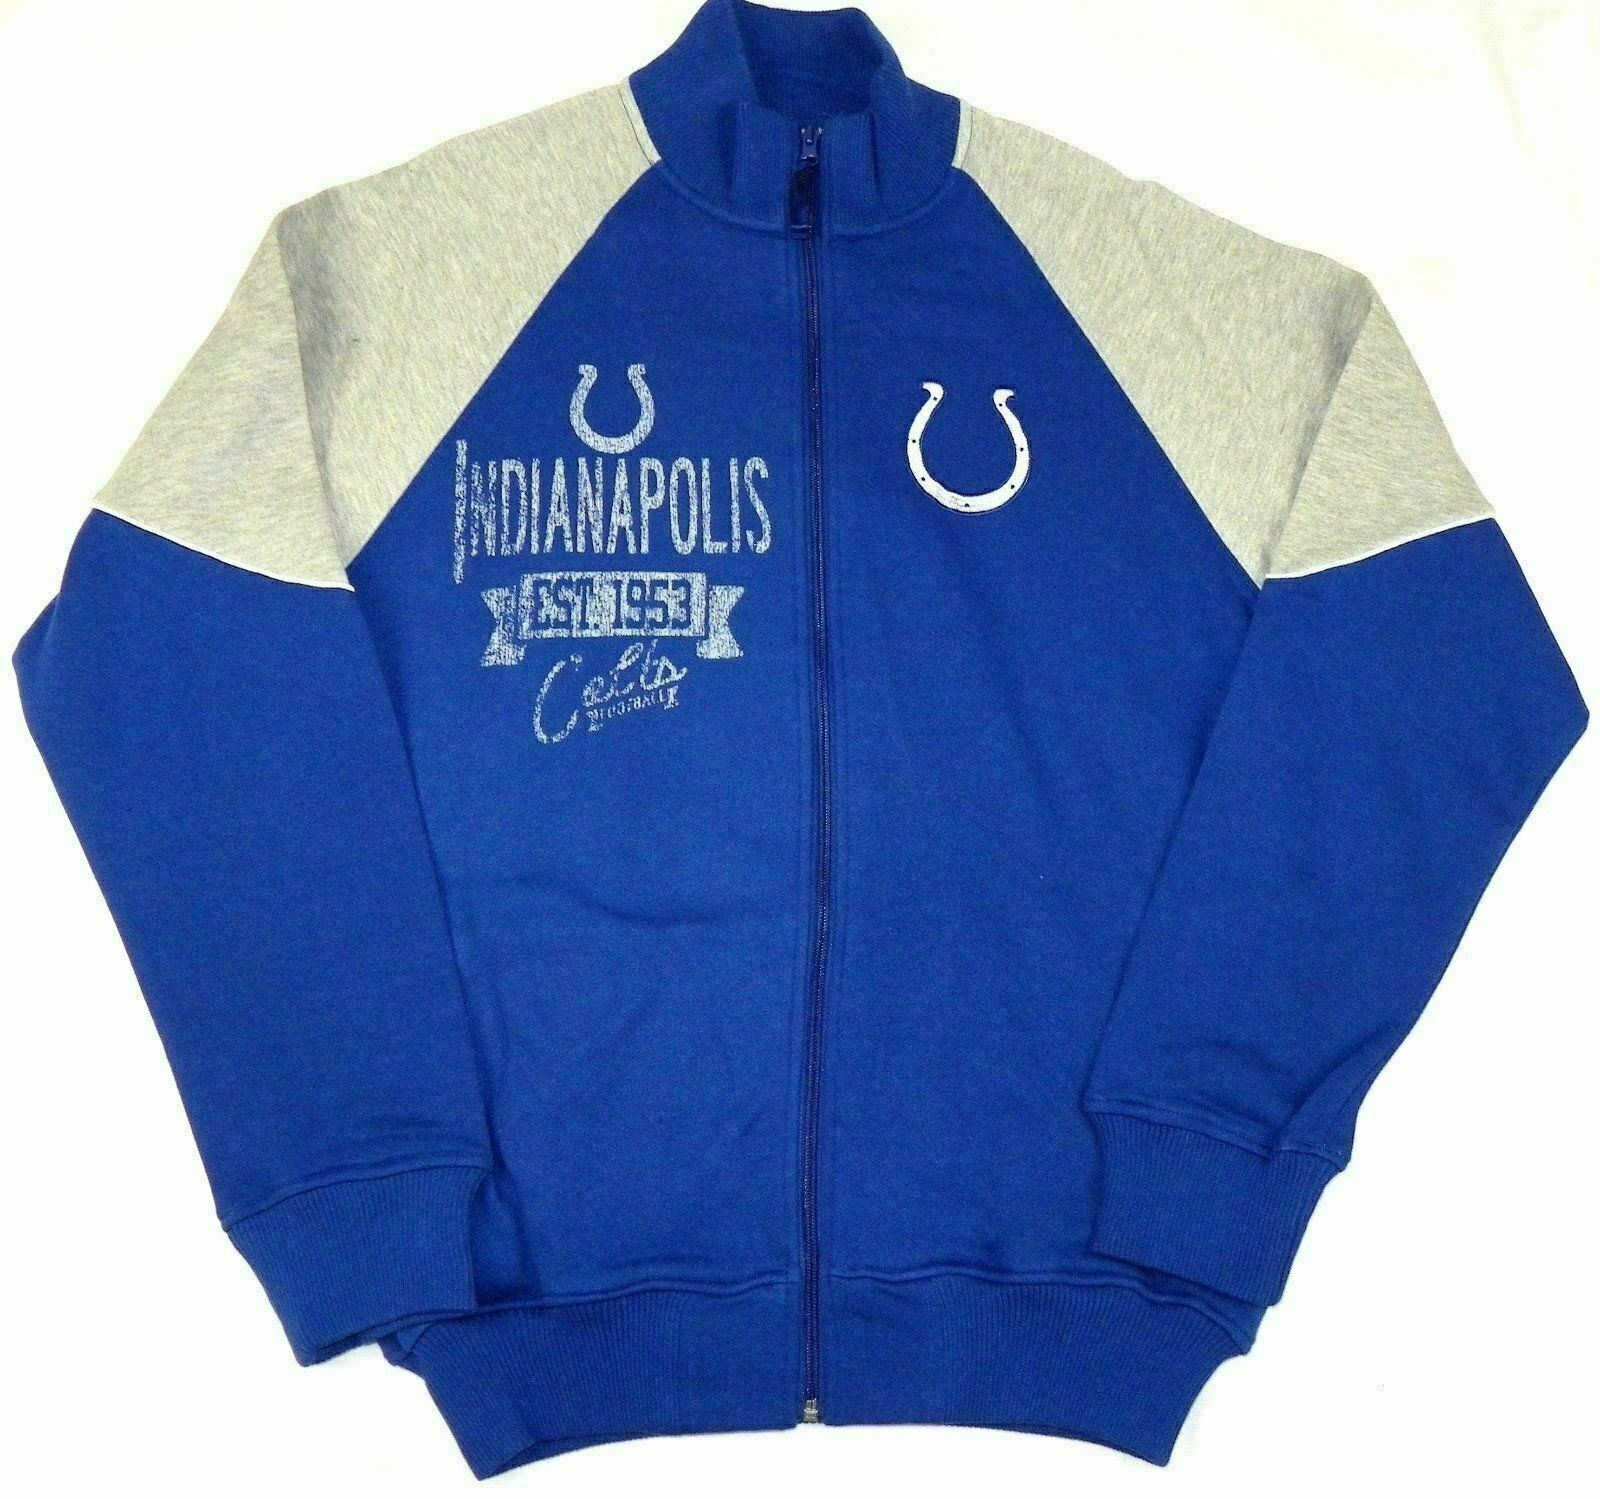 Large Indianapolis Colts Track Jacket Men's NFL Full Zip Sweatshirt G-III